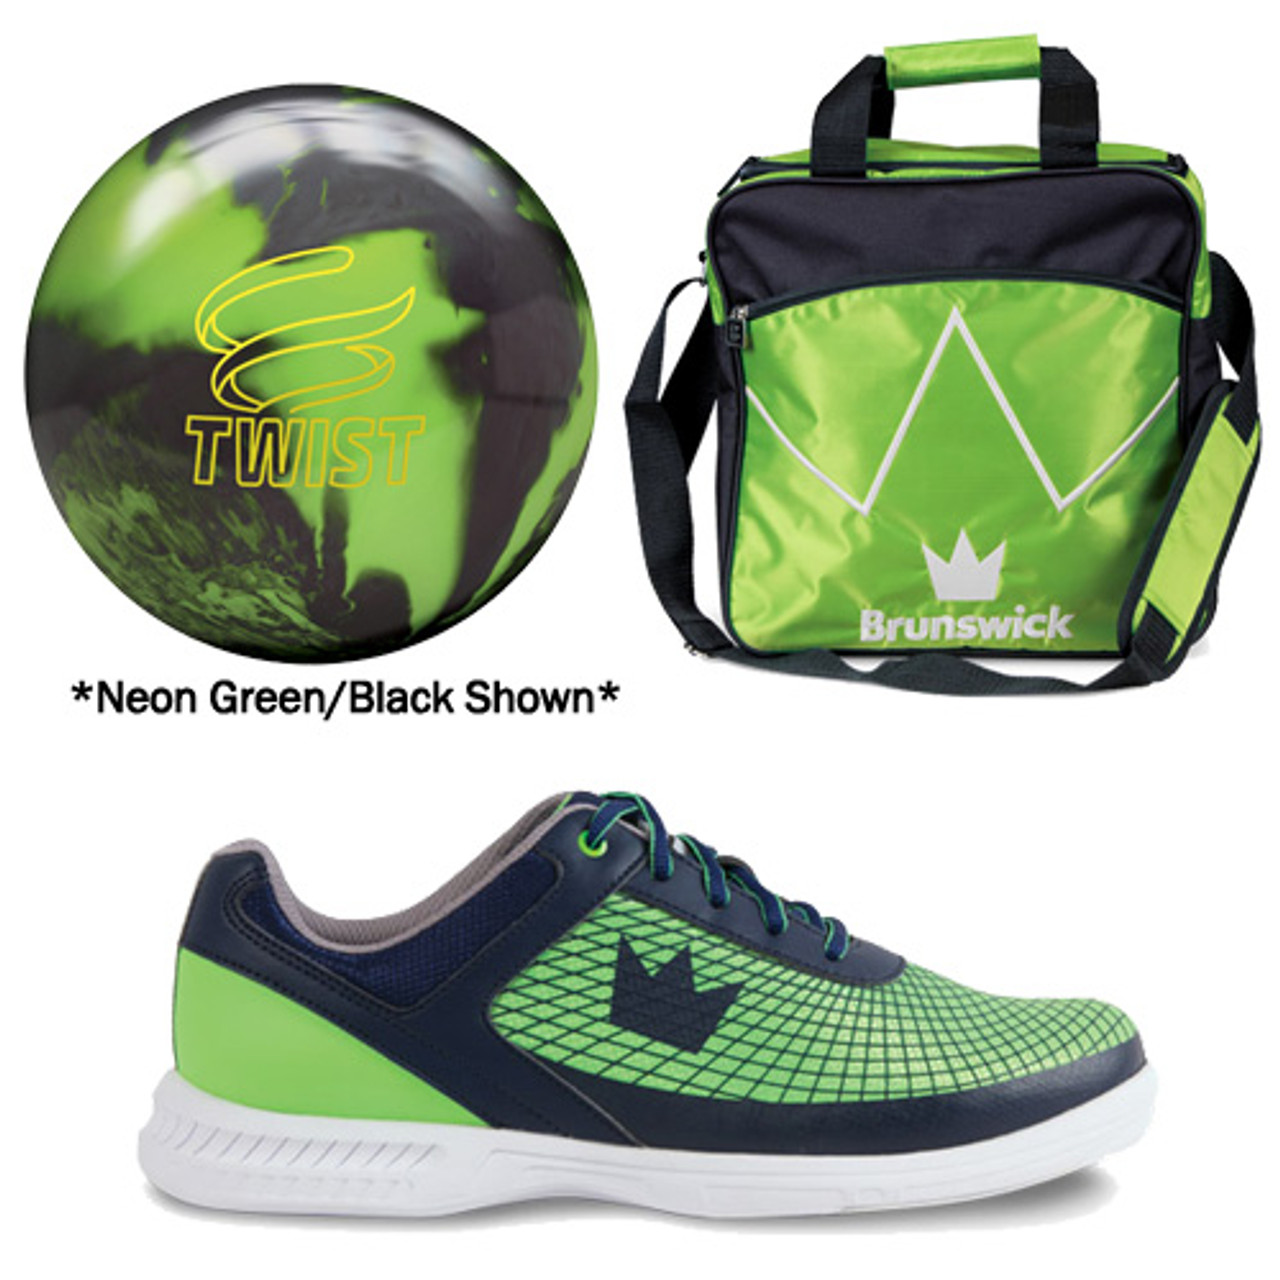 Bowling Ball DV8 Slime Green Bowling Ball and Bag for Bowling Shoes